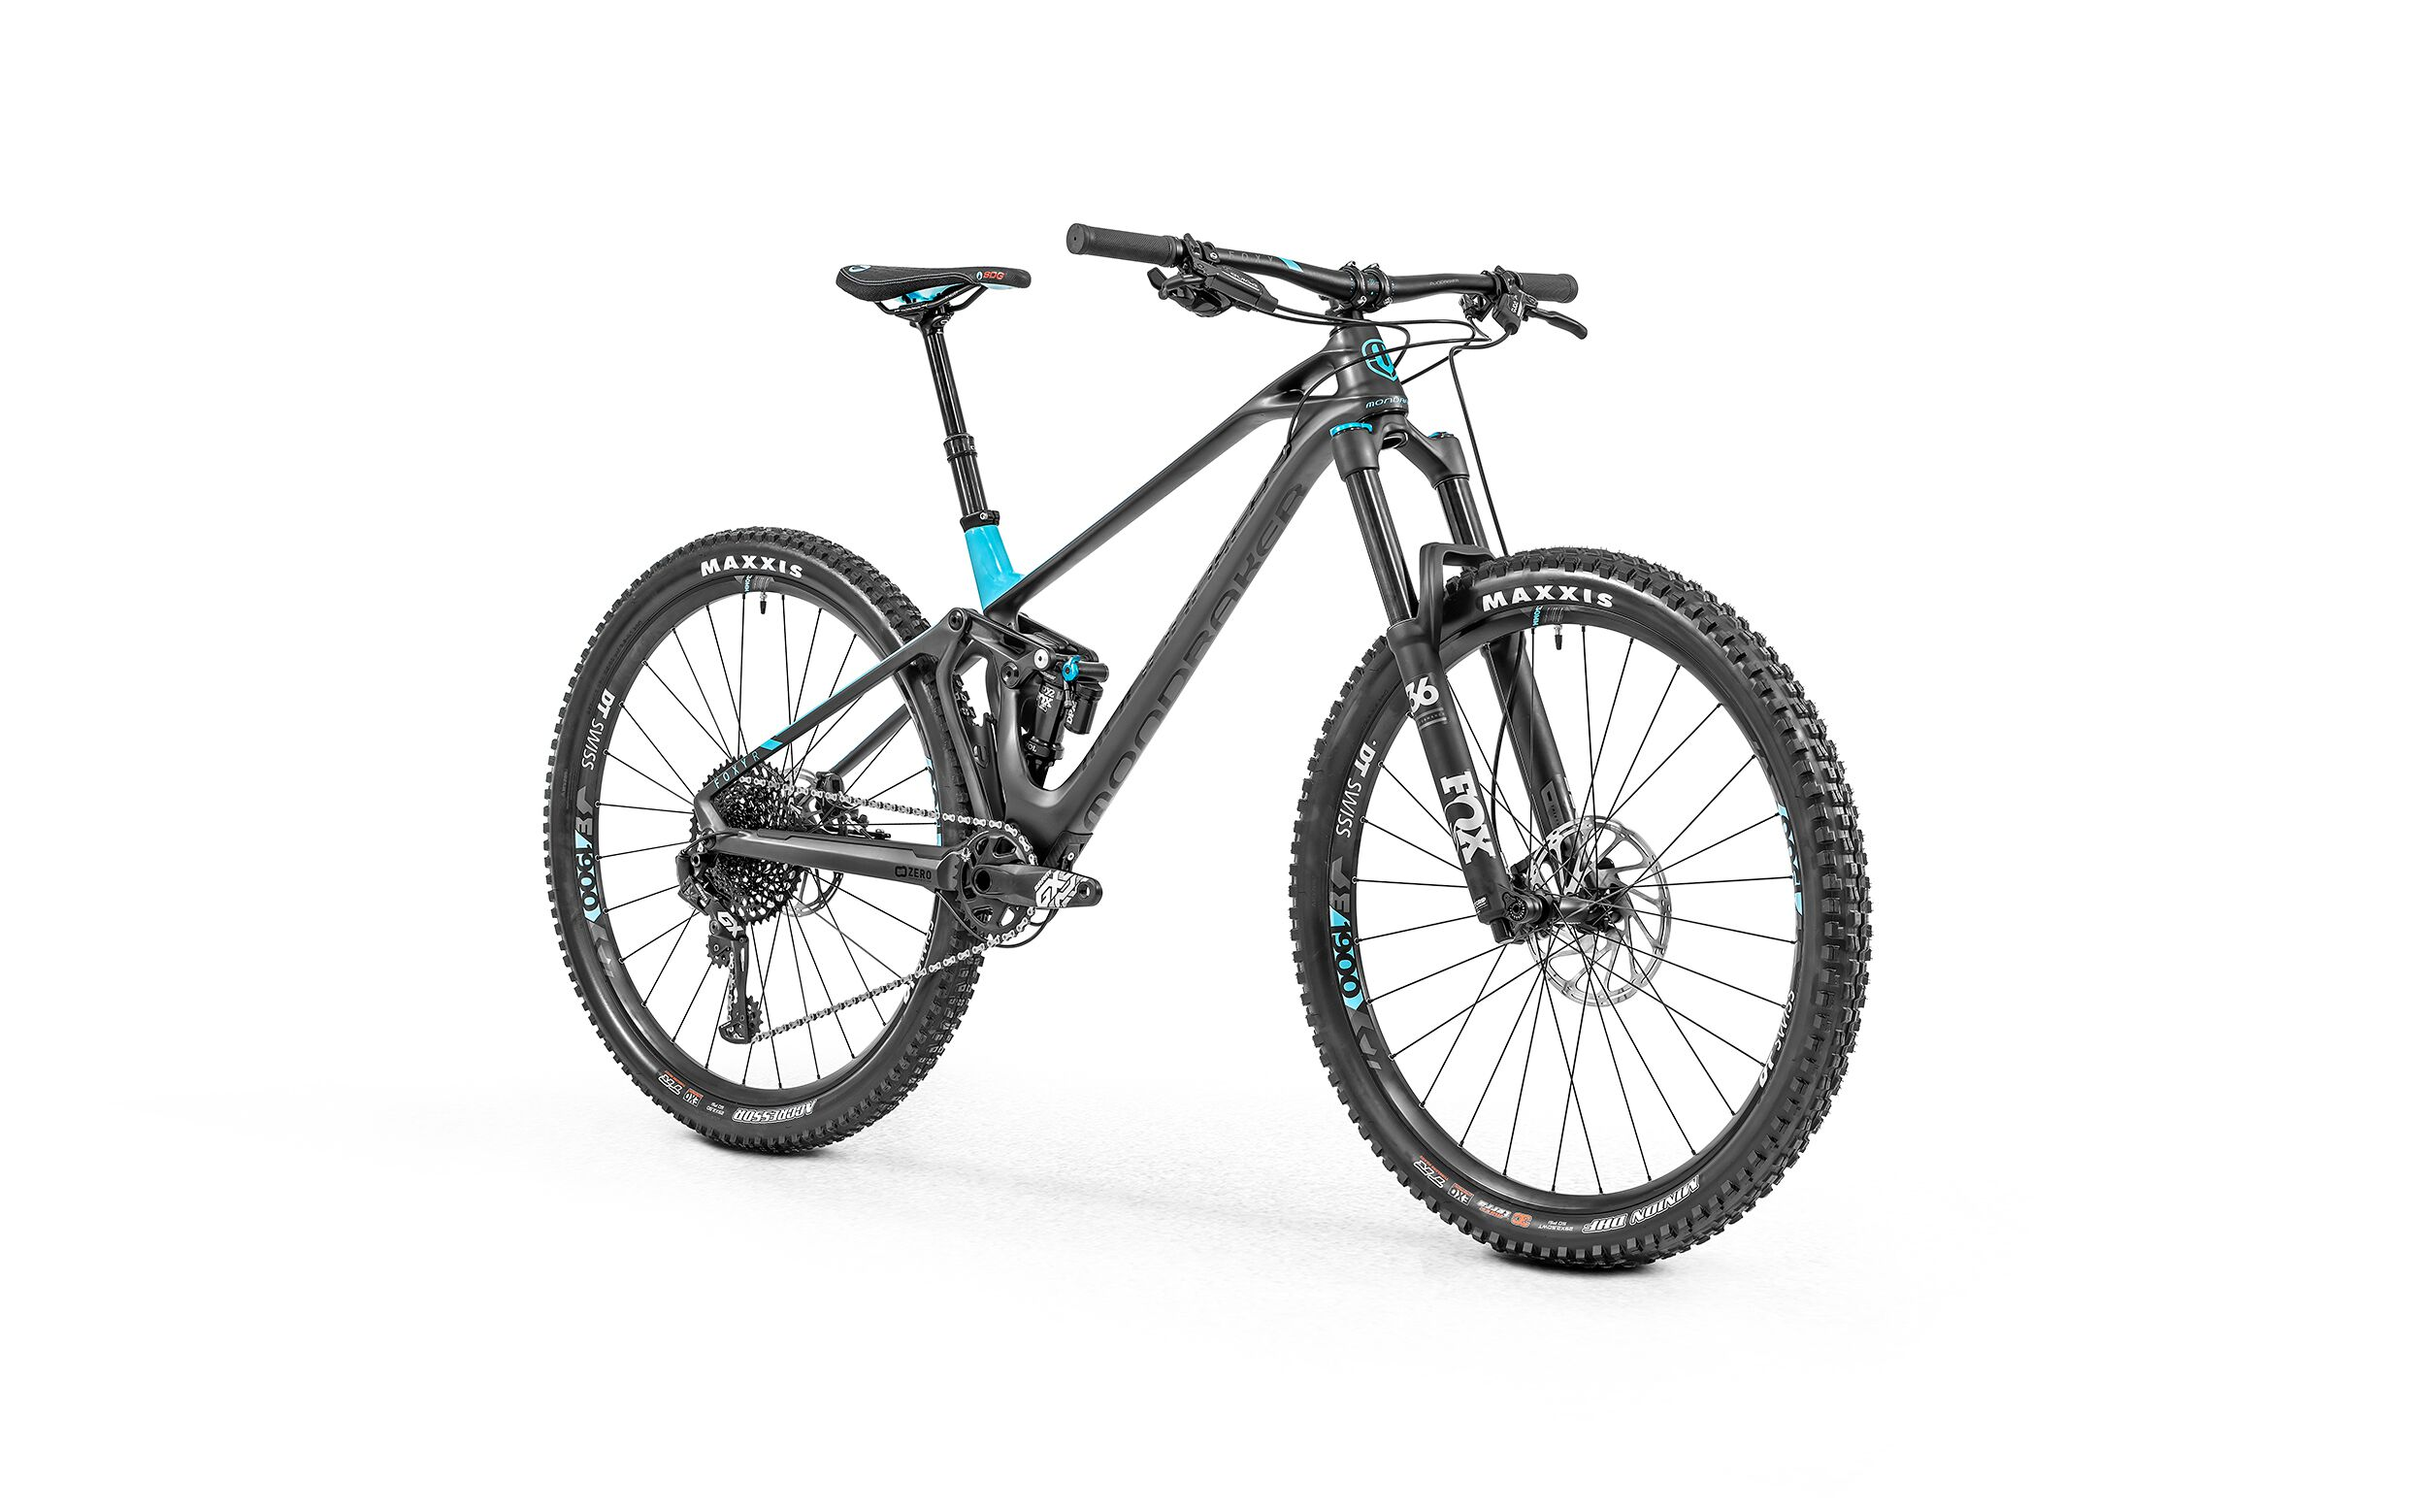 Mondraker Foxy Carbon R 29 All Mountain Enduro Bike